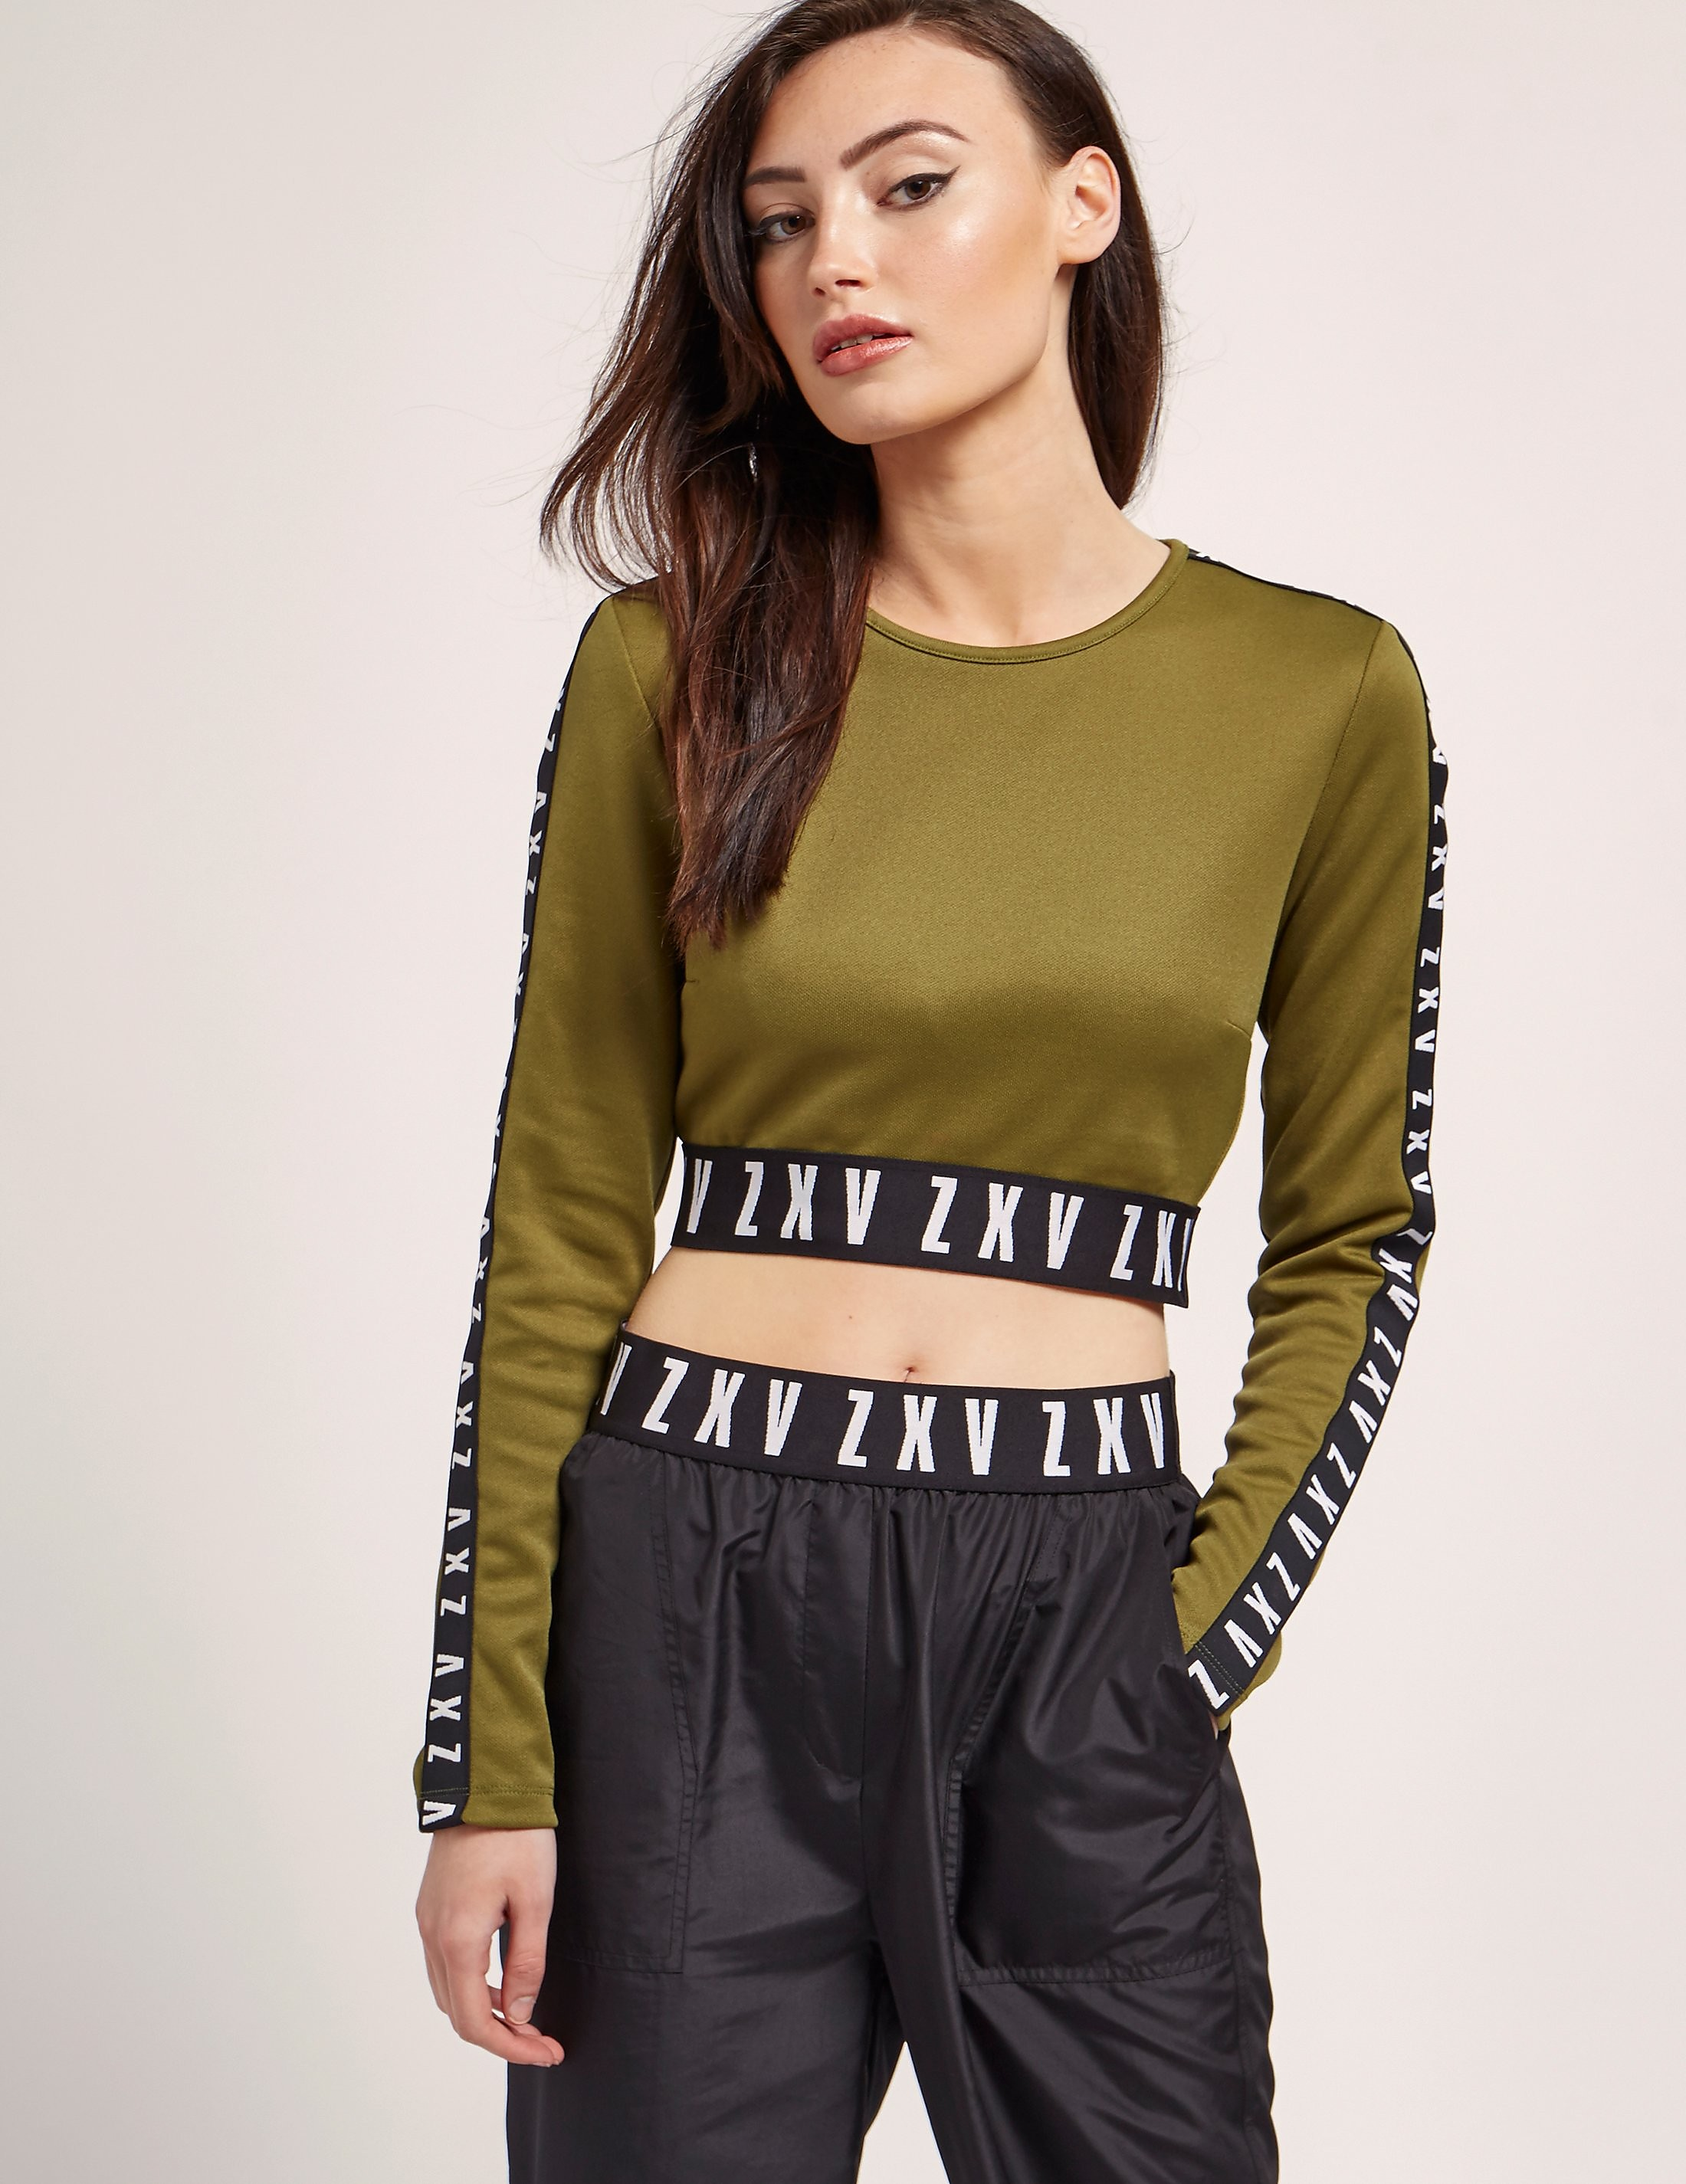 Versus Versace X Zayn Long Sleeve Crop Top